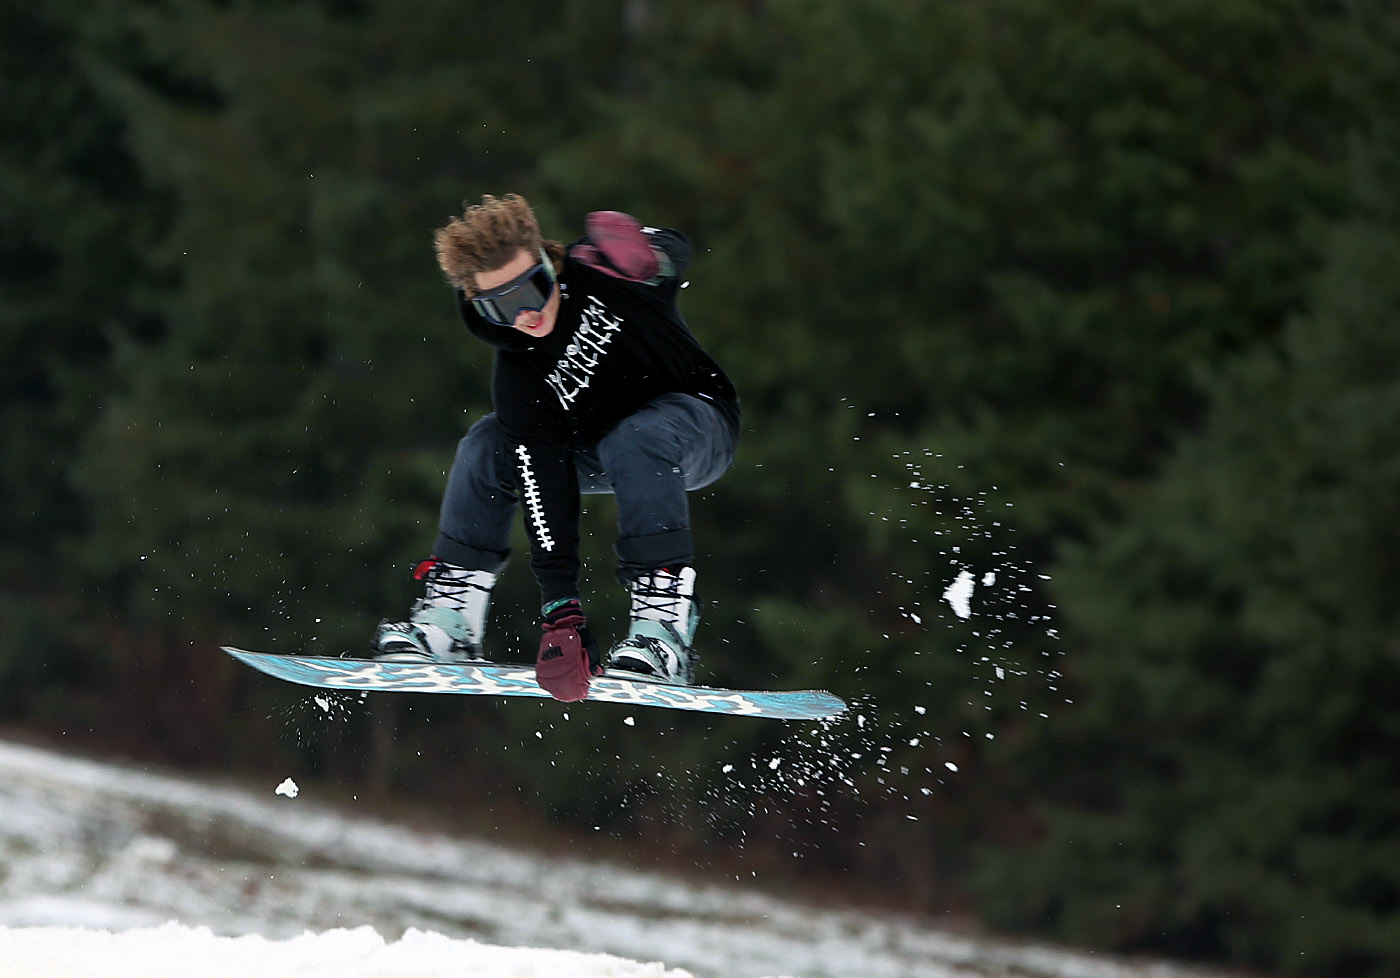 Snowboarder Jake Lamb, 17, of Grimsby, Ontario hits a jump on Mardi Gras as snowboarders and skiers hit the slopes on opening weekend Holiday Valley, they had 4 chairlifts and 5 slopes open, in Ellicottville, N.Y., on Sunday, Nov. 27, 2016. (John Hickey/Buffalo News)